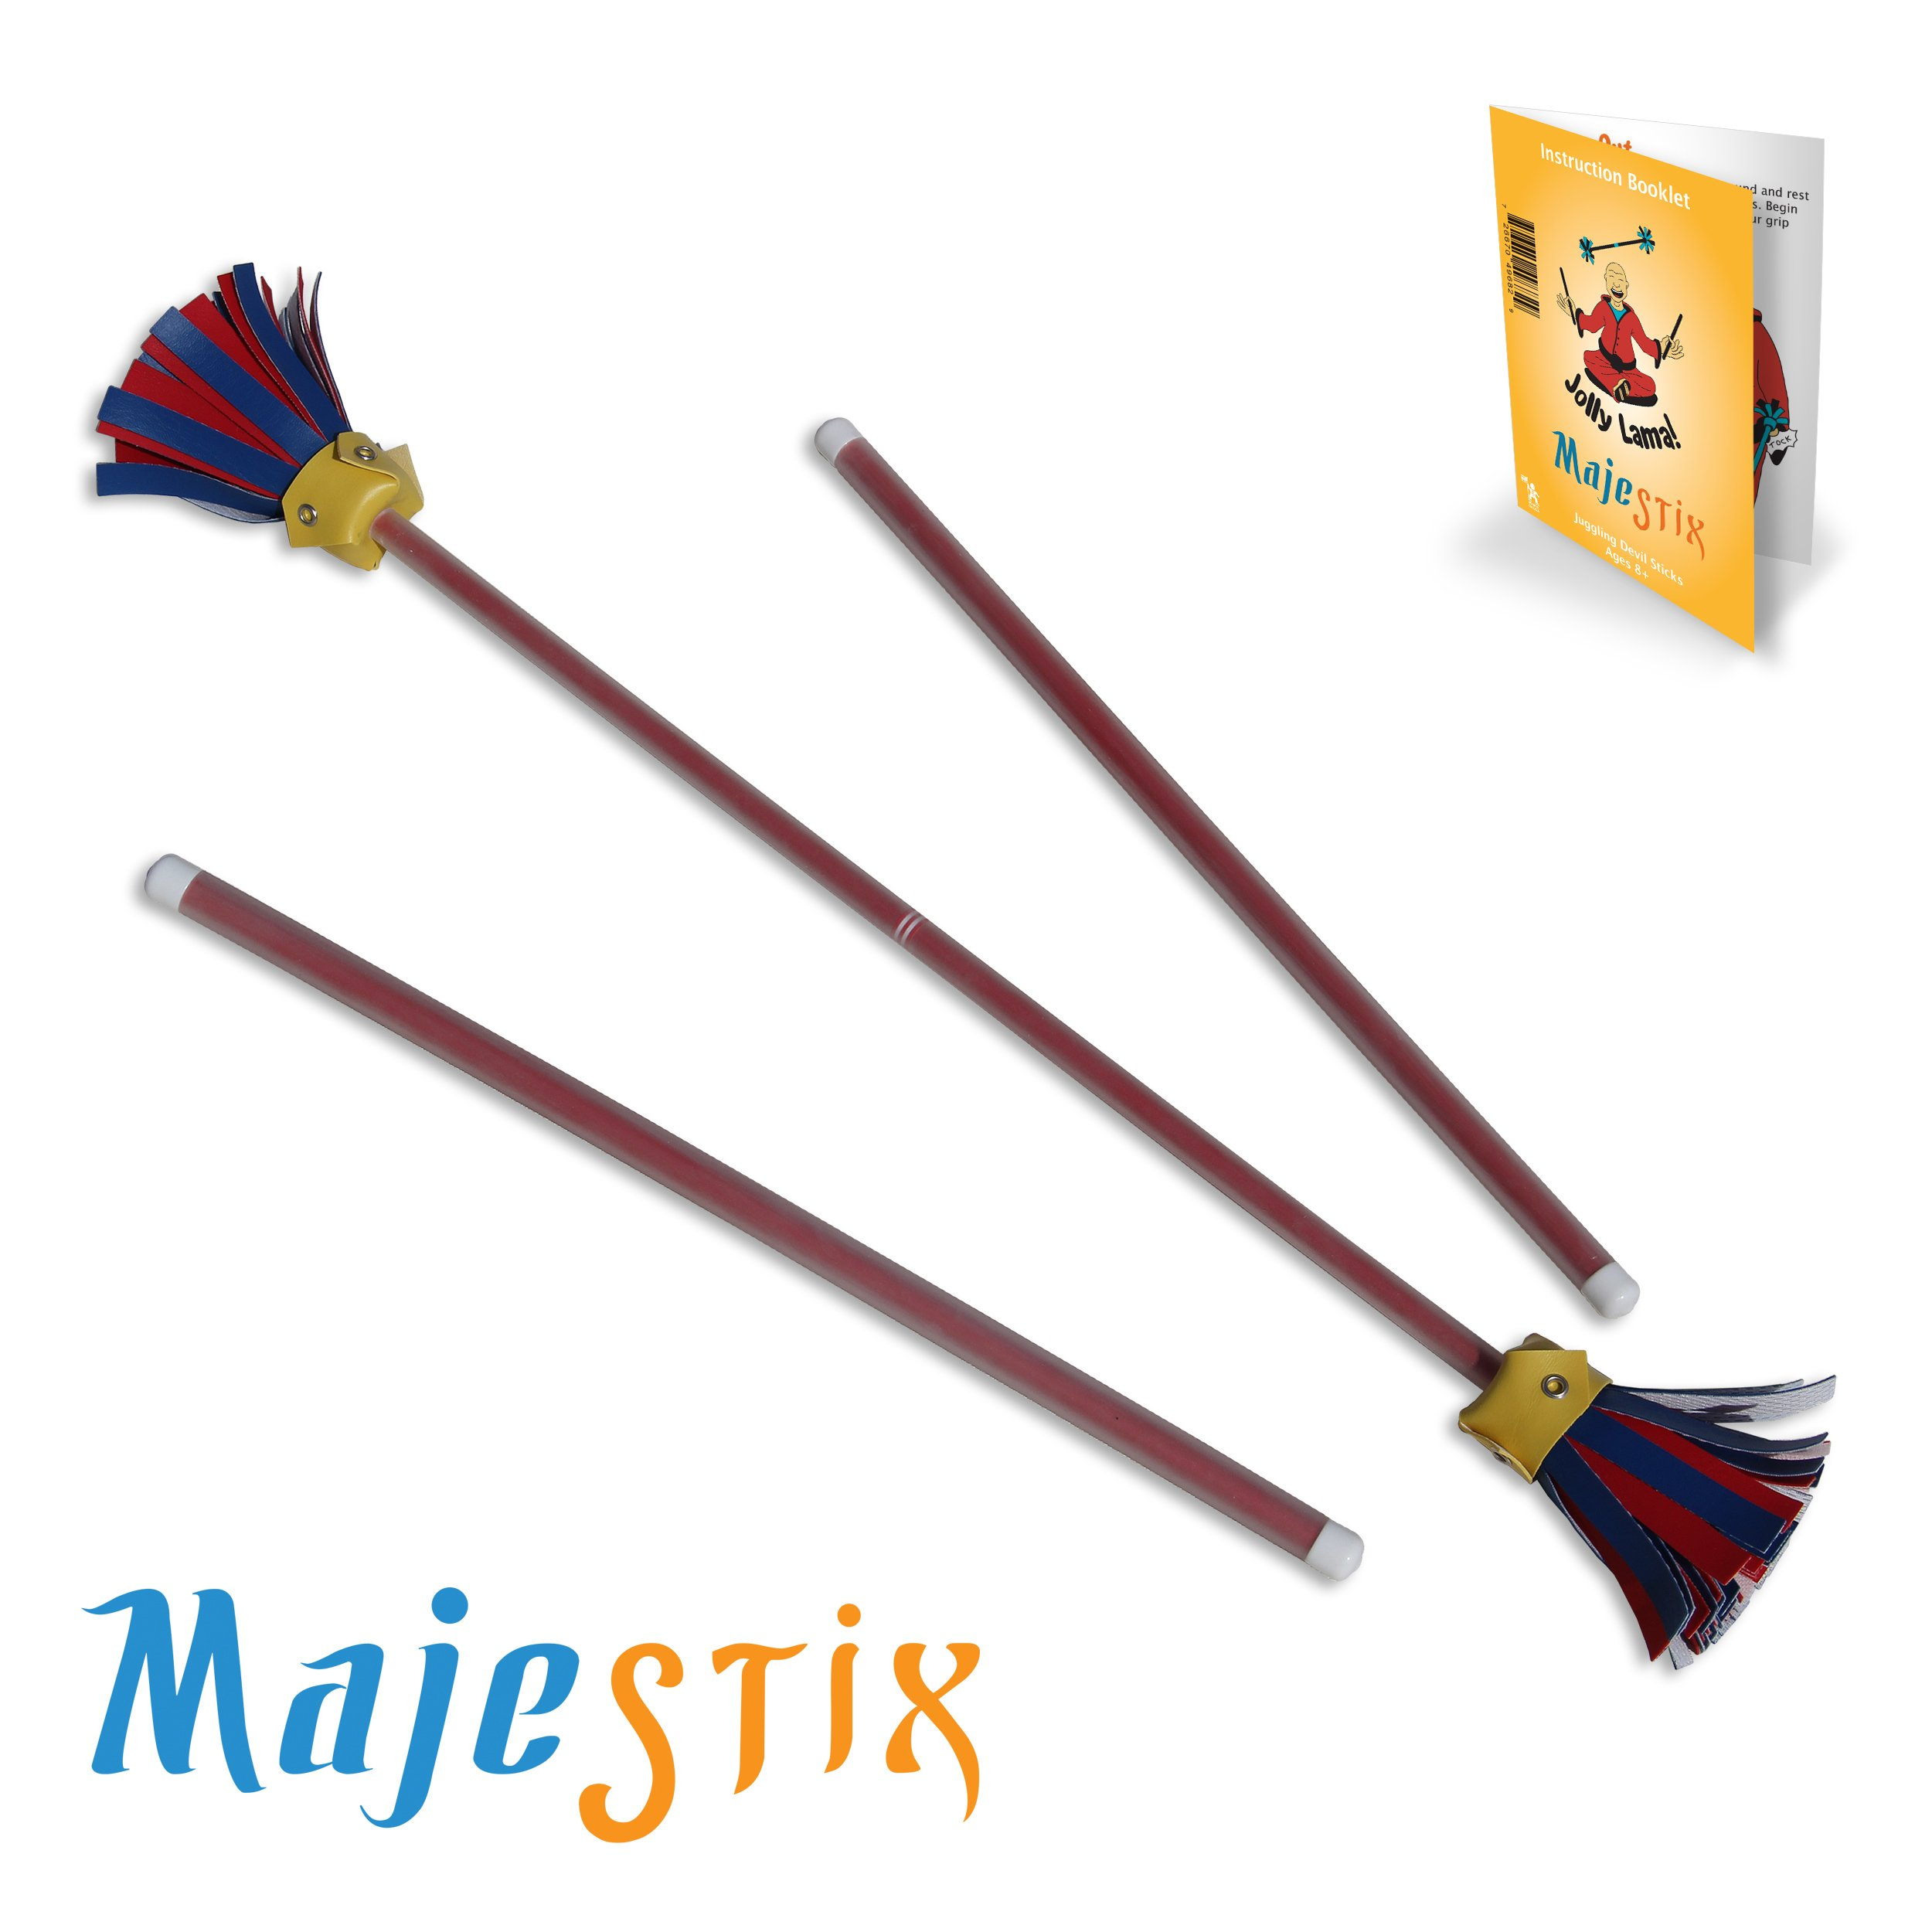 Red Majestix Juggling Sticks Devil Sticks by Jolly Lama!